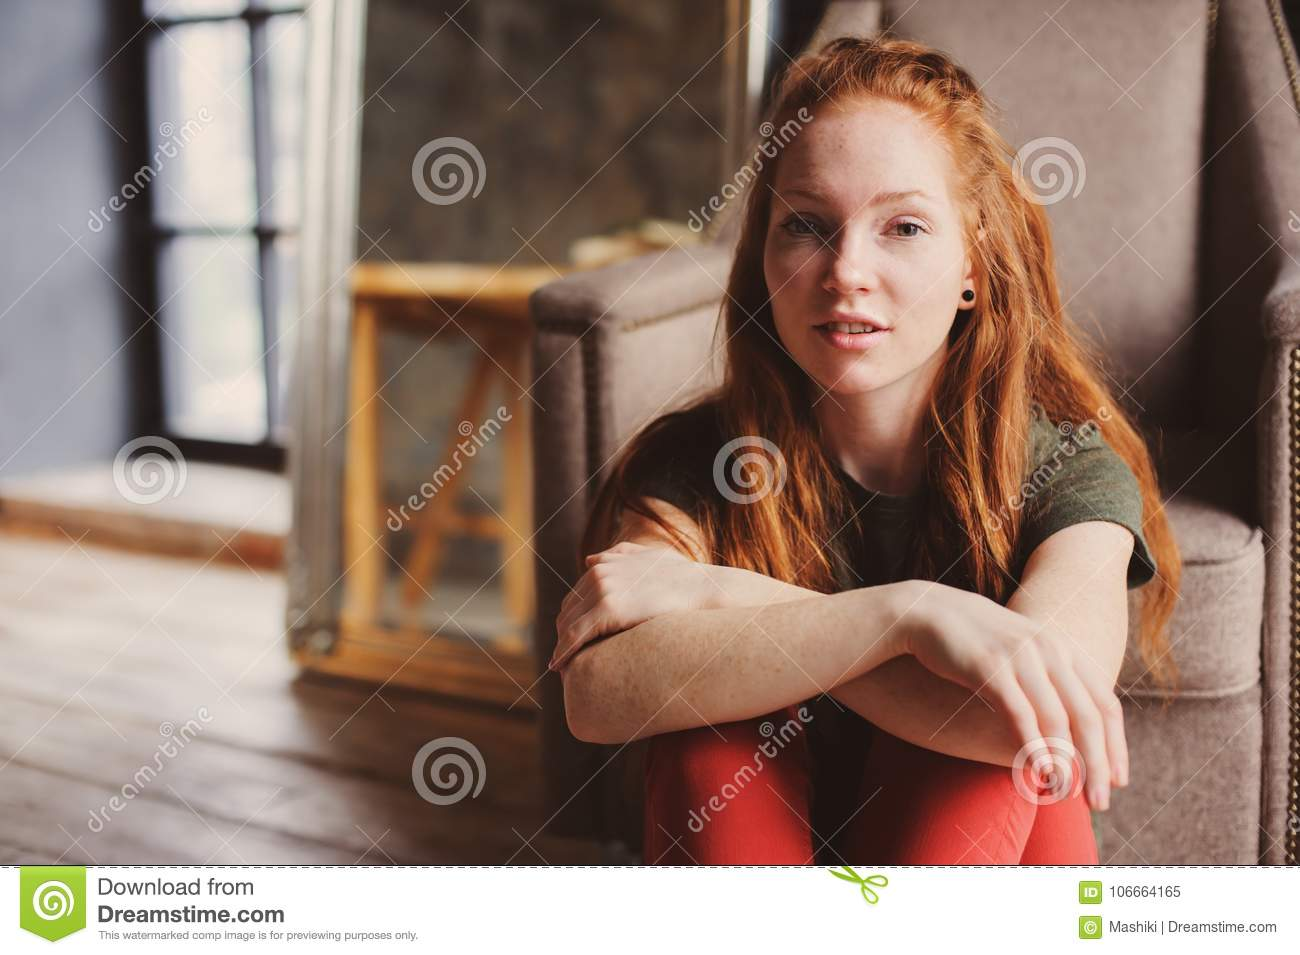 Redhead woman relaxing on rocking chair. Portrait of a beautiful redhead woman relaxing on